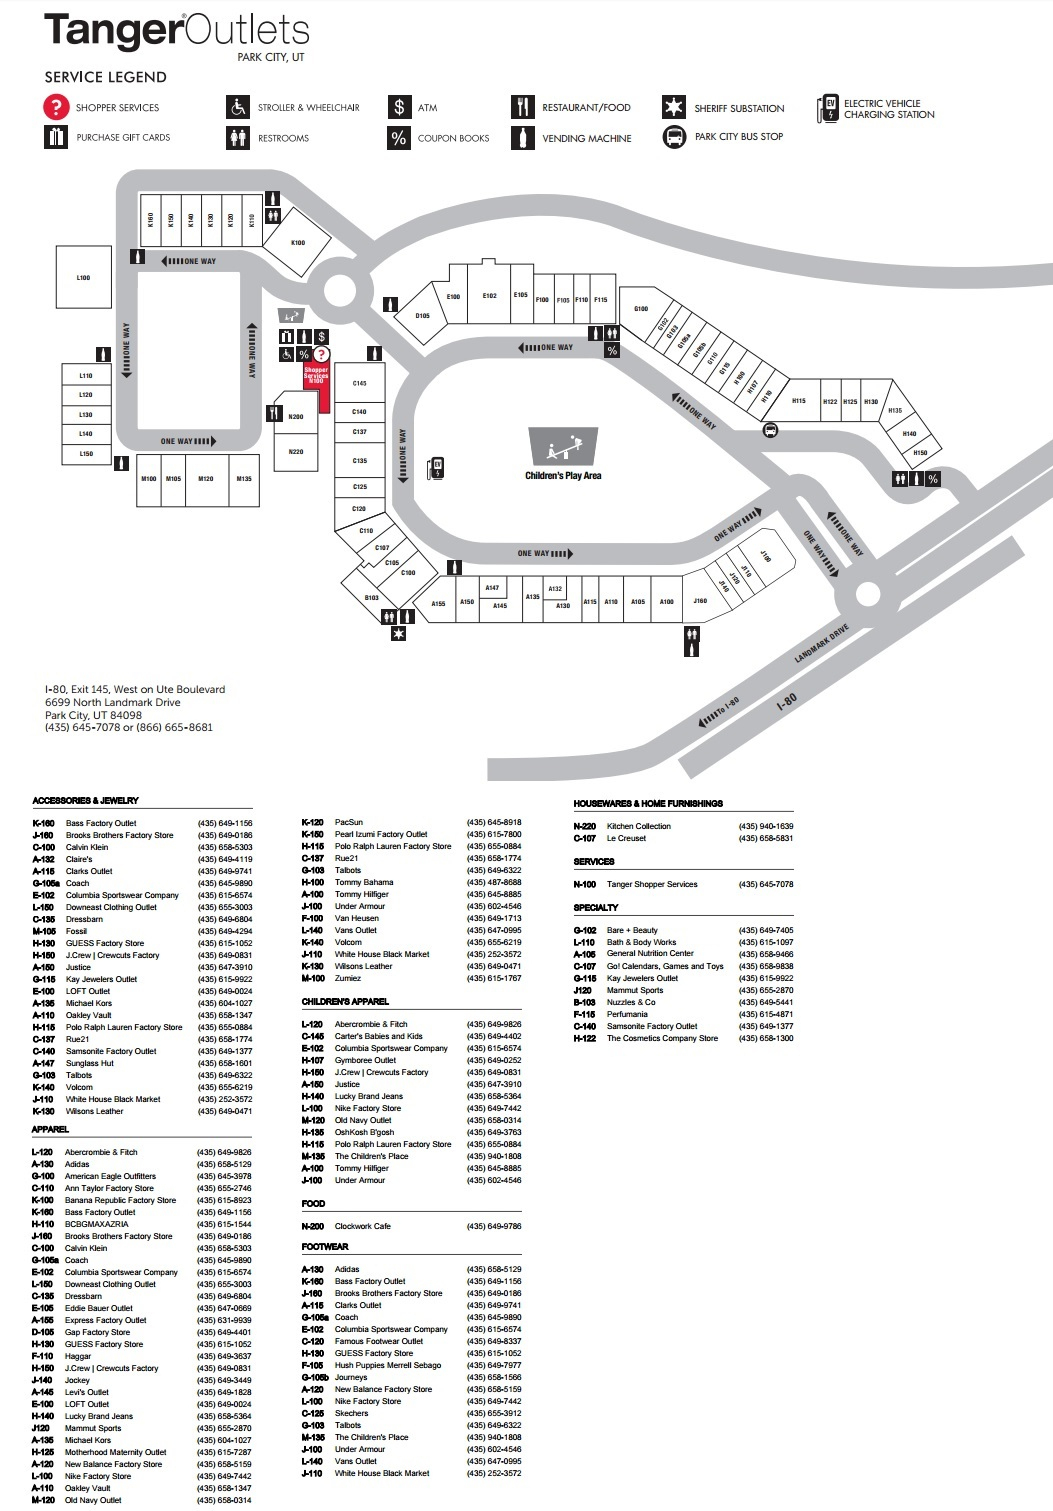 Tanger Outlet Texas City Map - Tanger Outlet Texas City Map